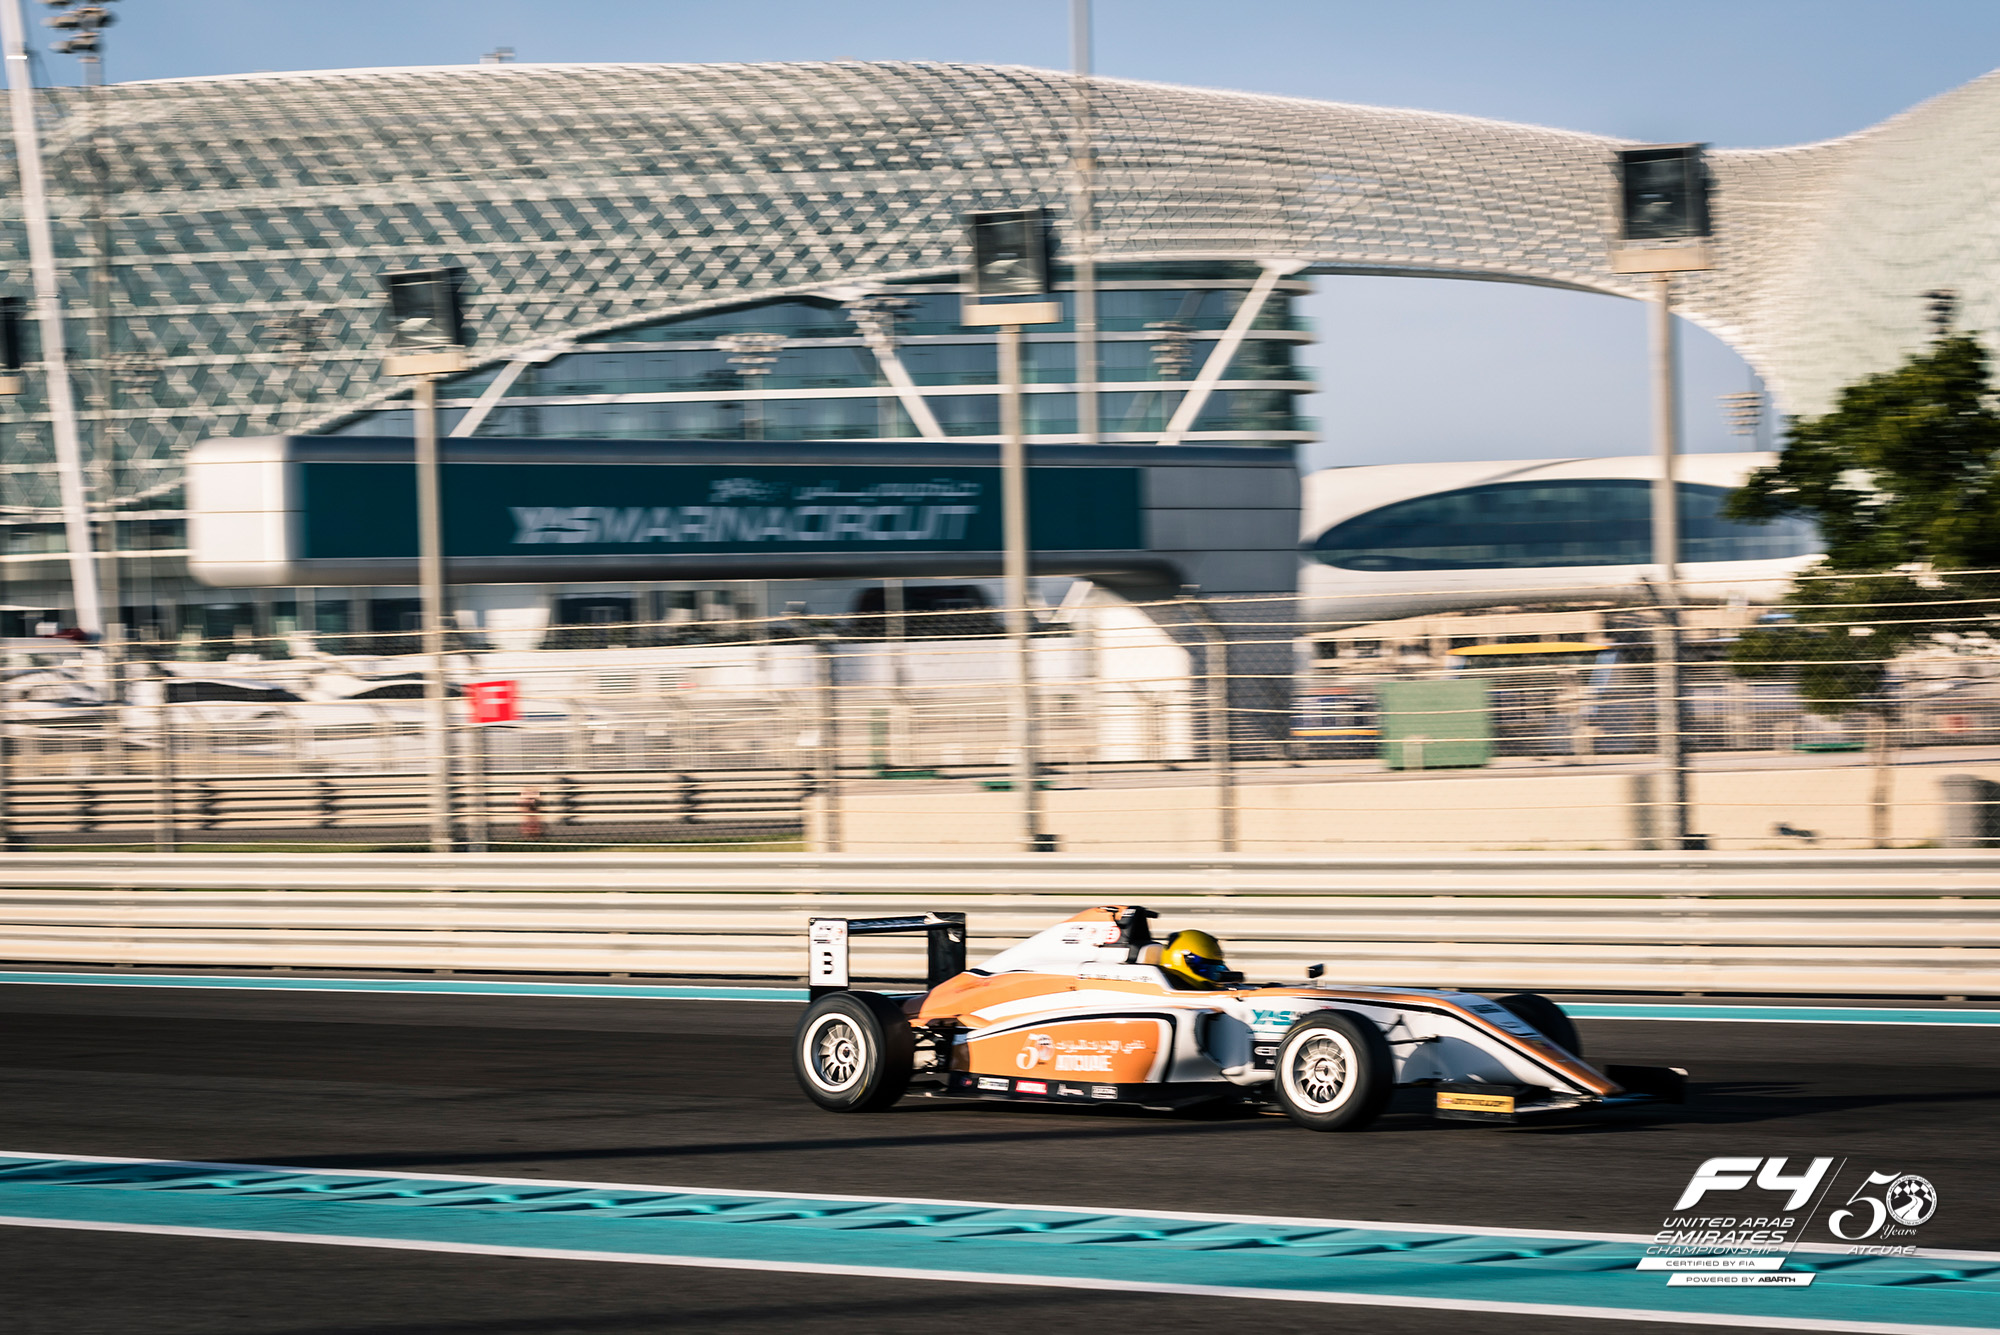 2016 12 18   F4 Second Roud   Abu Dhabi 12 Of 39